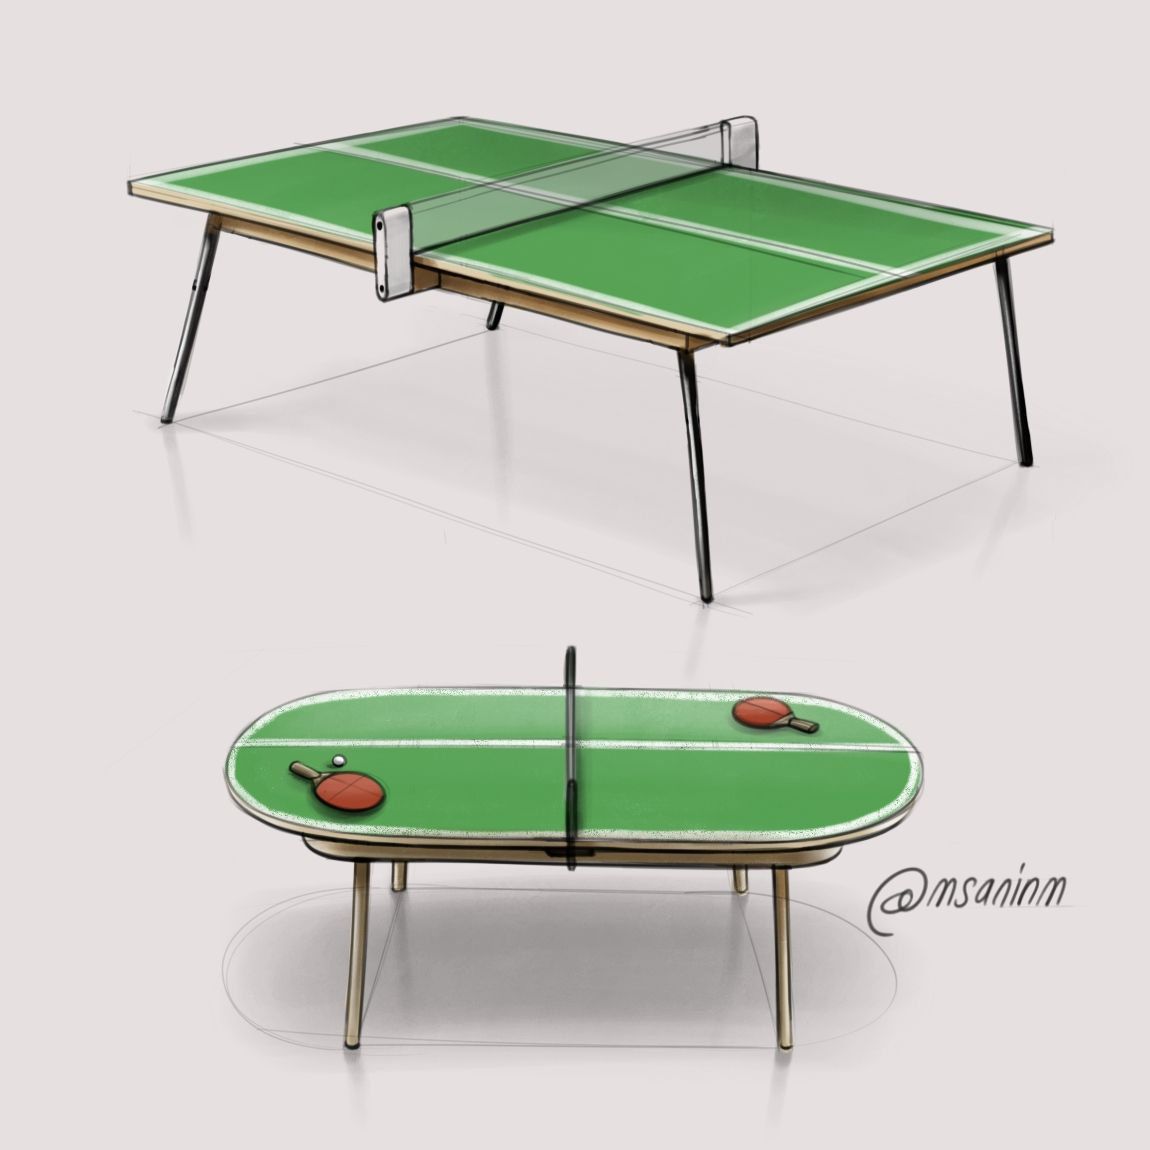 Pin Pong Table Design | PRODUCT DESIGN SKETCHES | Pinterest | Product Design  Sketching And Product Design